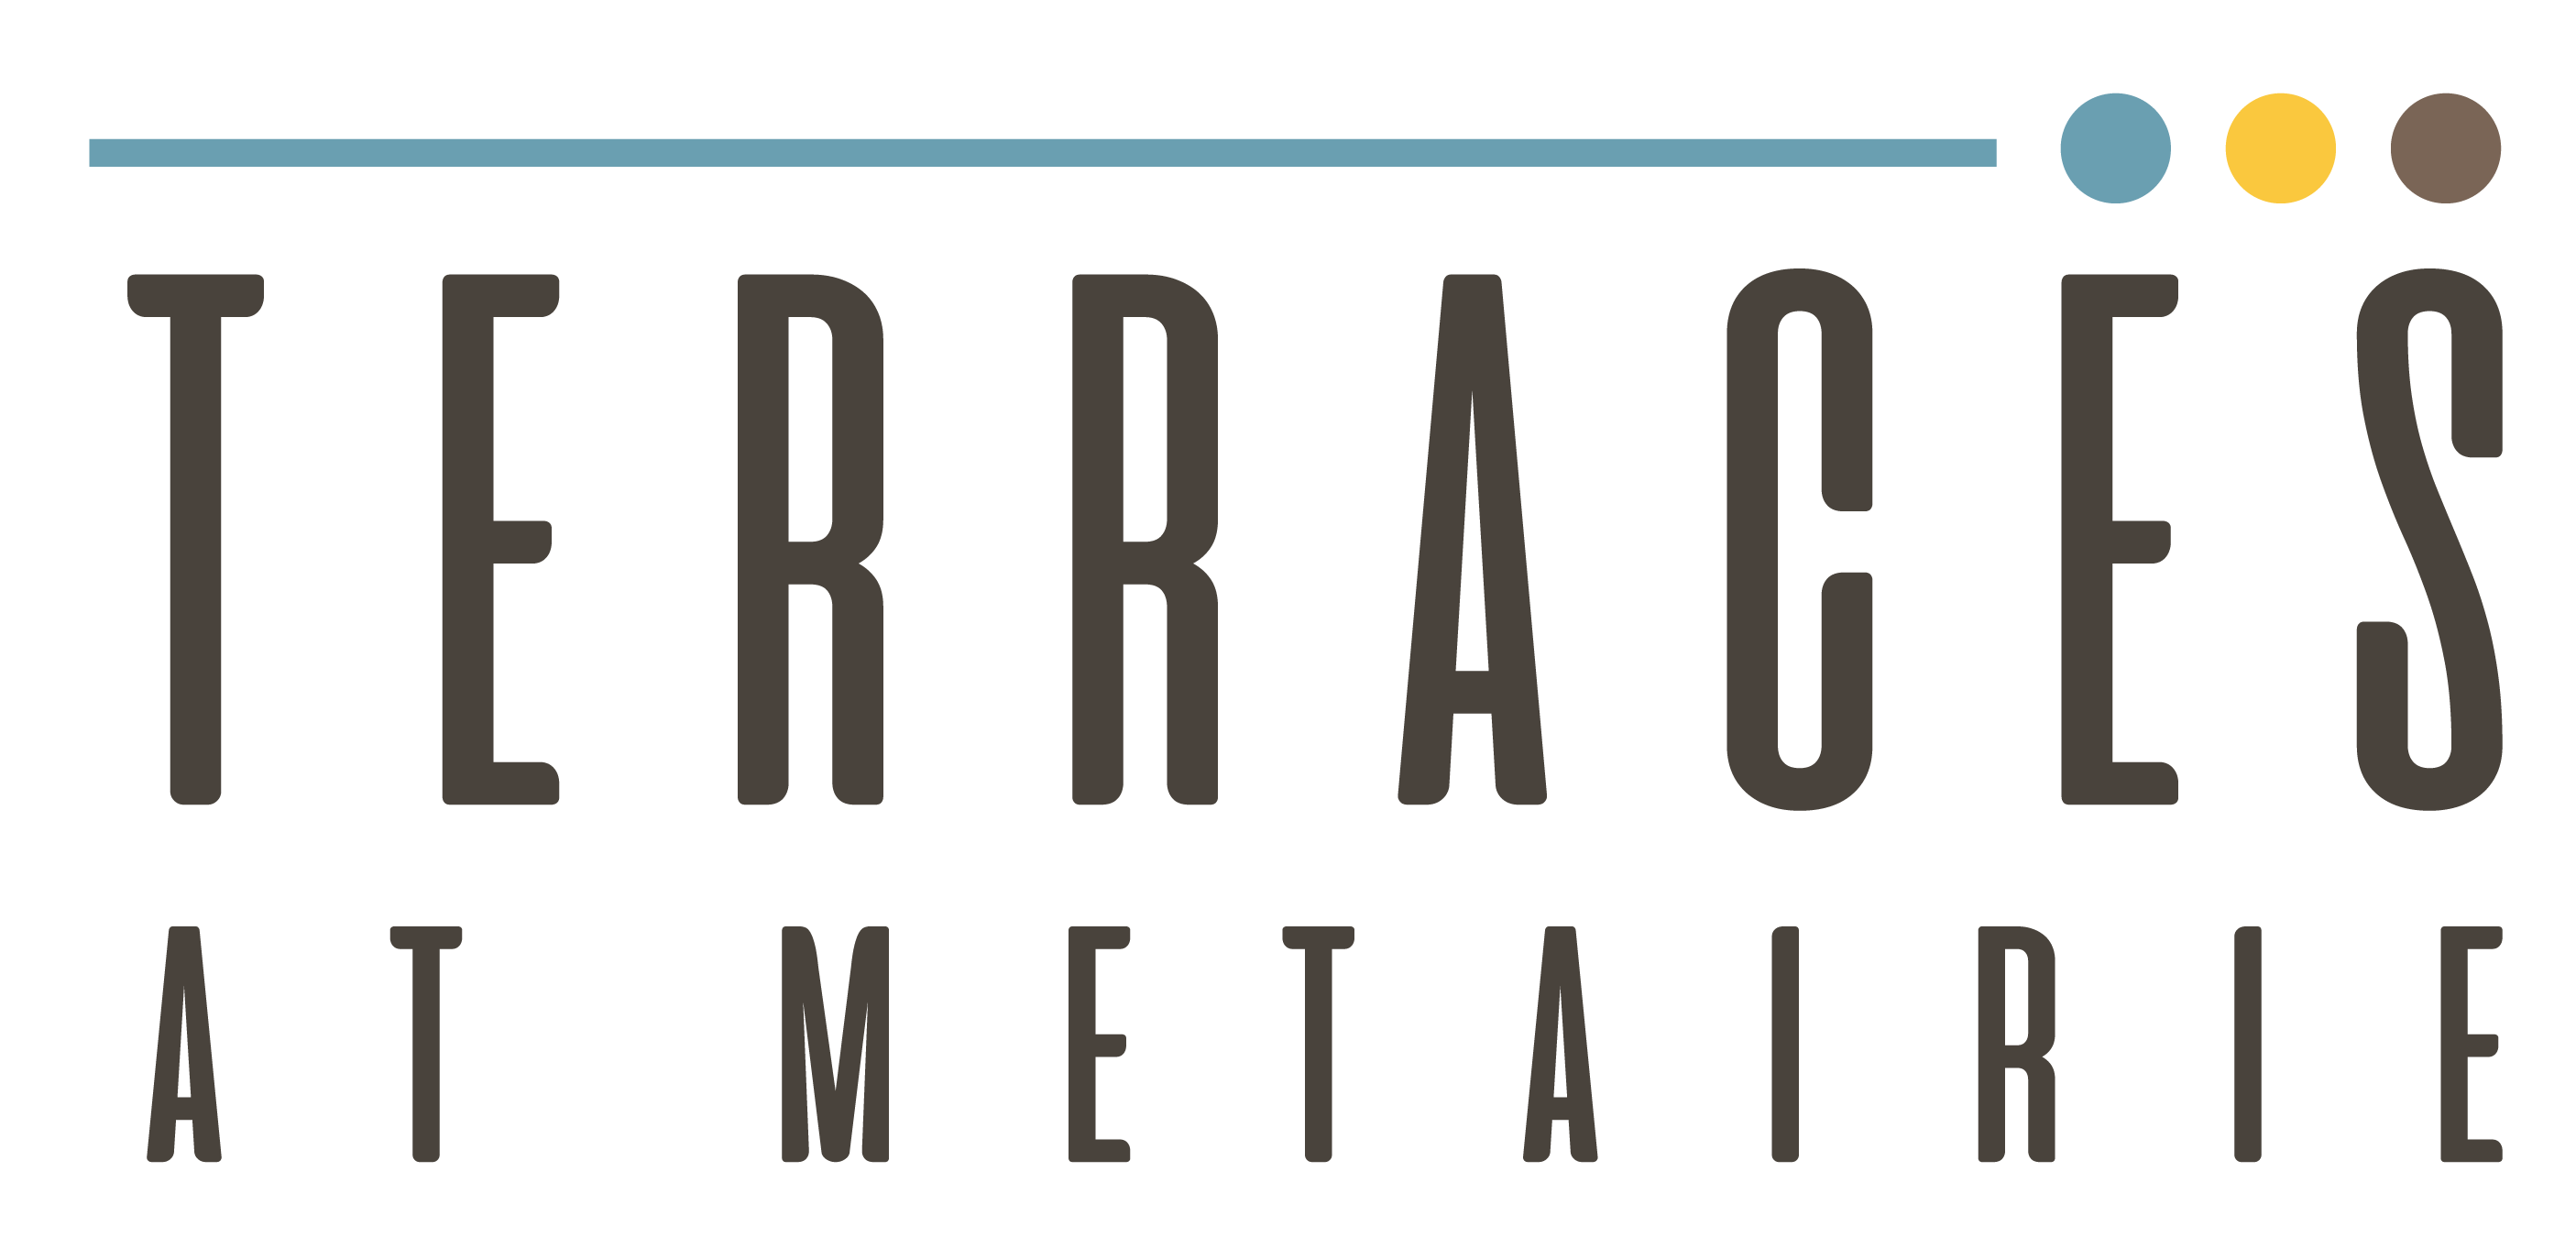 The Terraces at Metairie I Logo